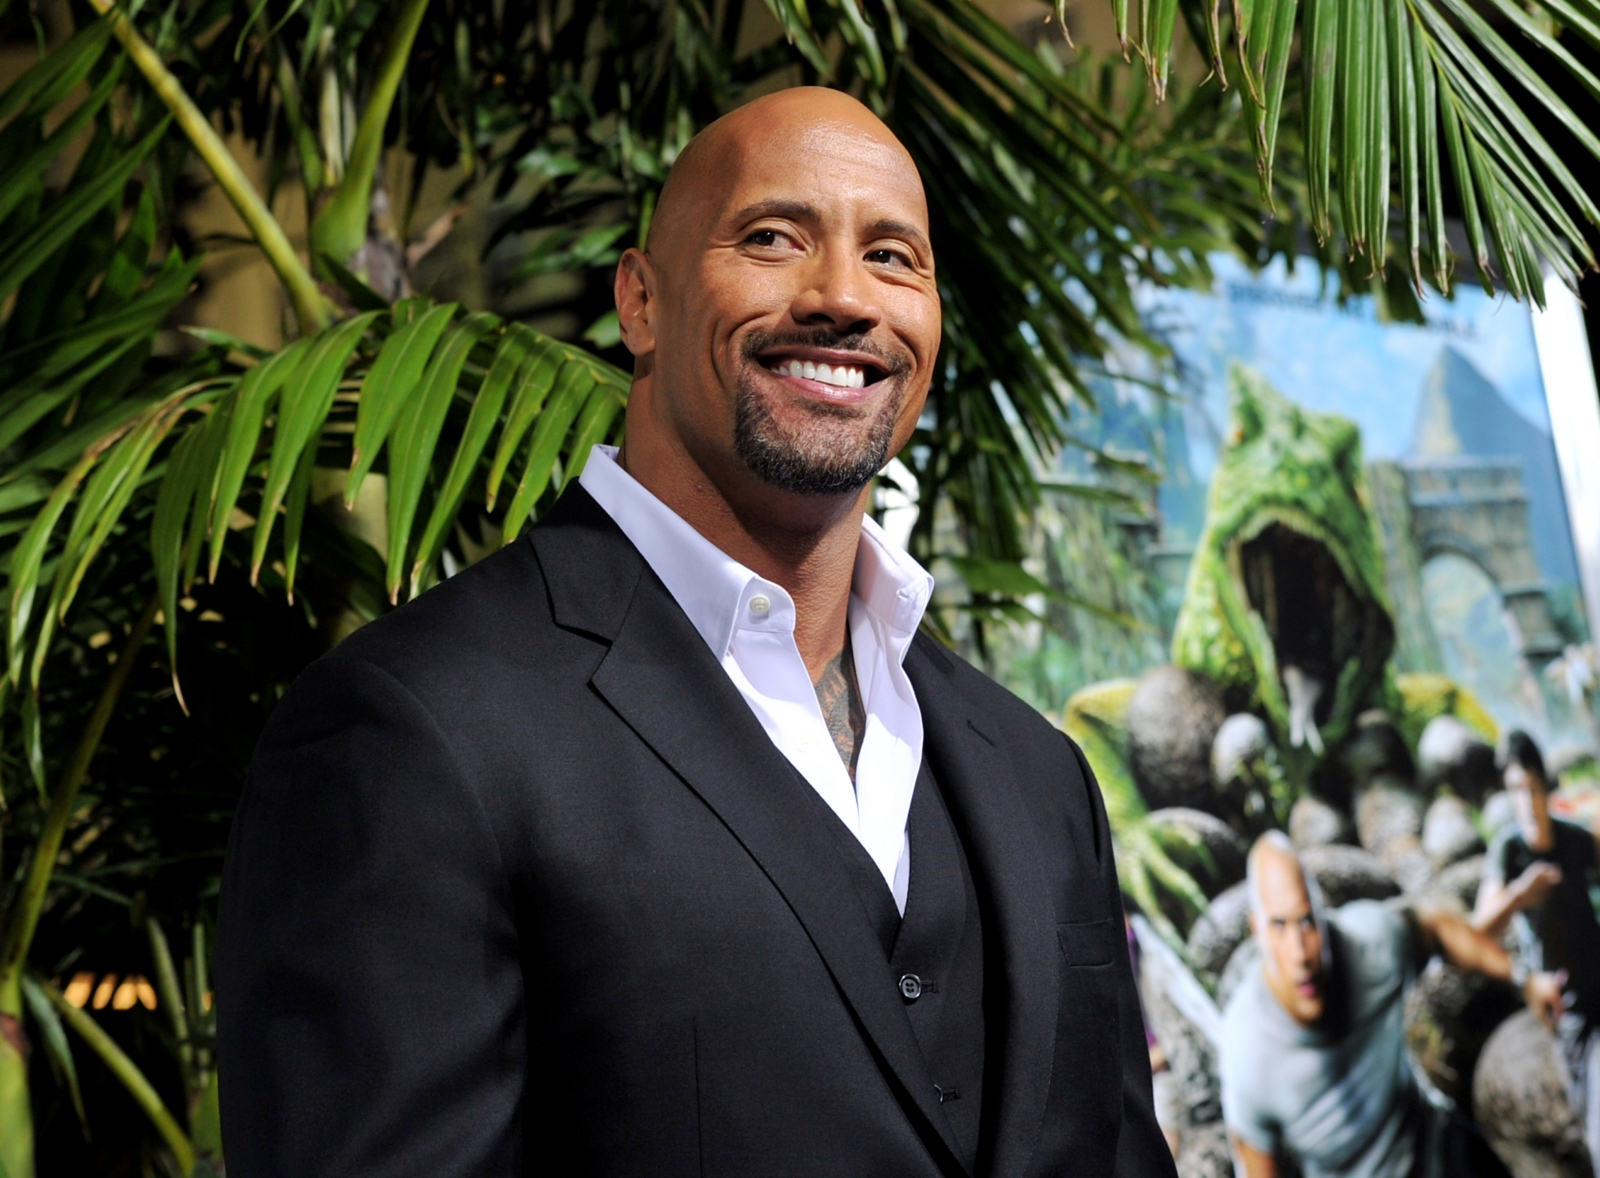 Images Of Dwayne The Rock Johnson: Dwayne The Rock Johnson Surprises Dad With New Car, Shares